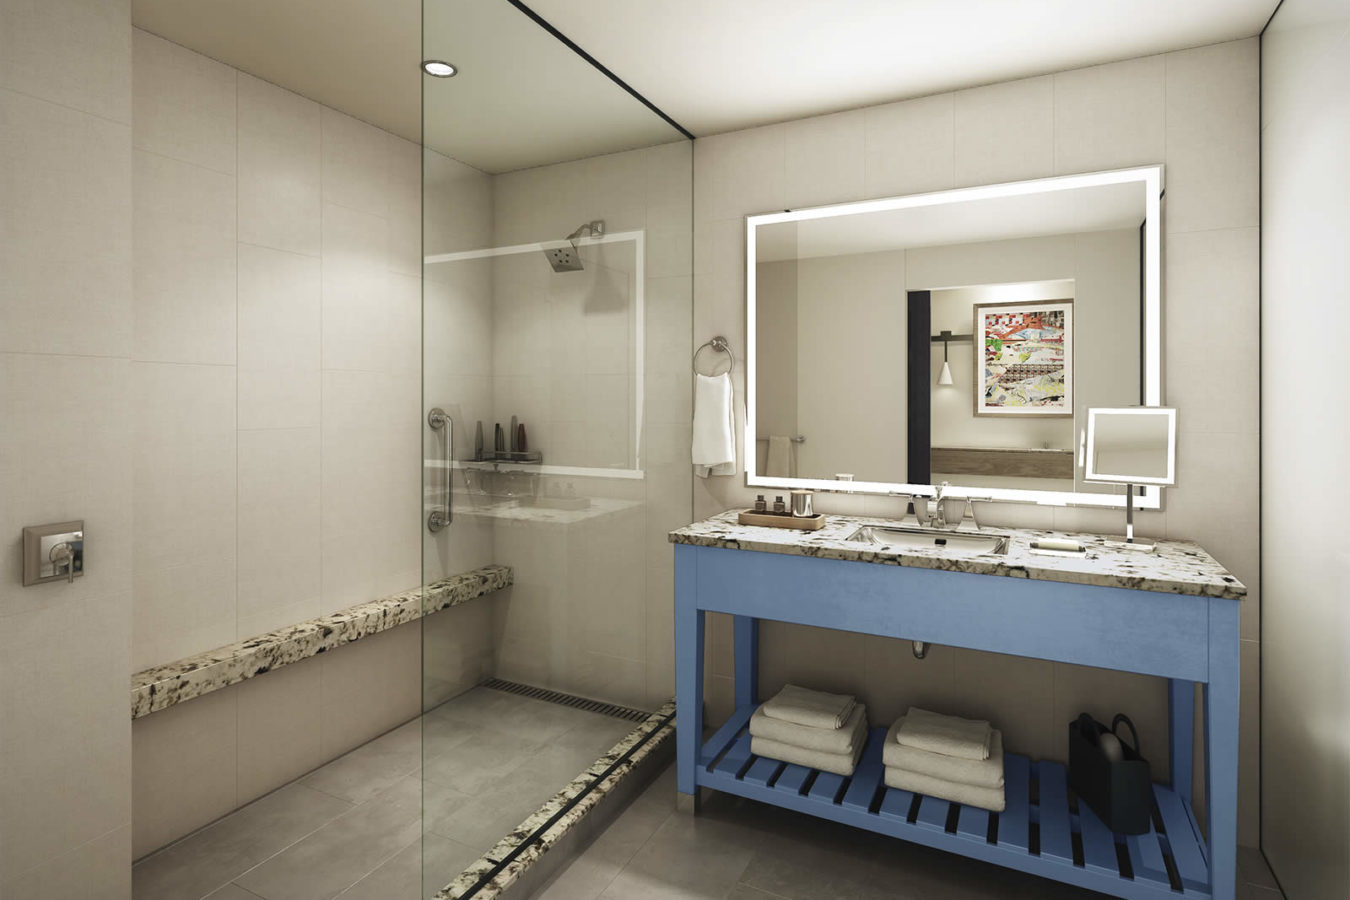 Rendering of a bathroom at the Harpeth Hotel